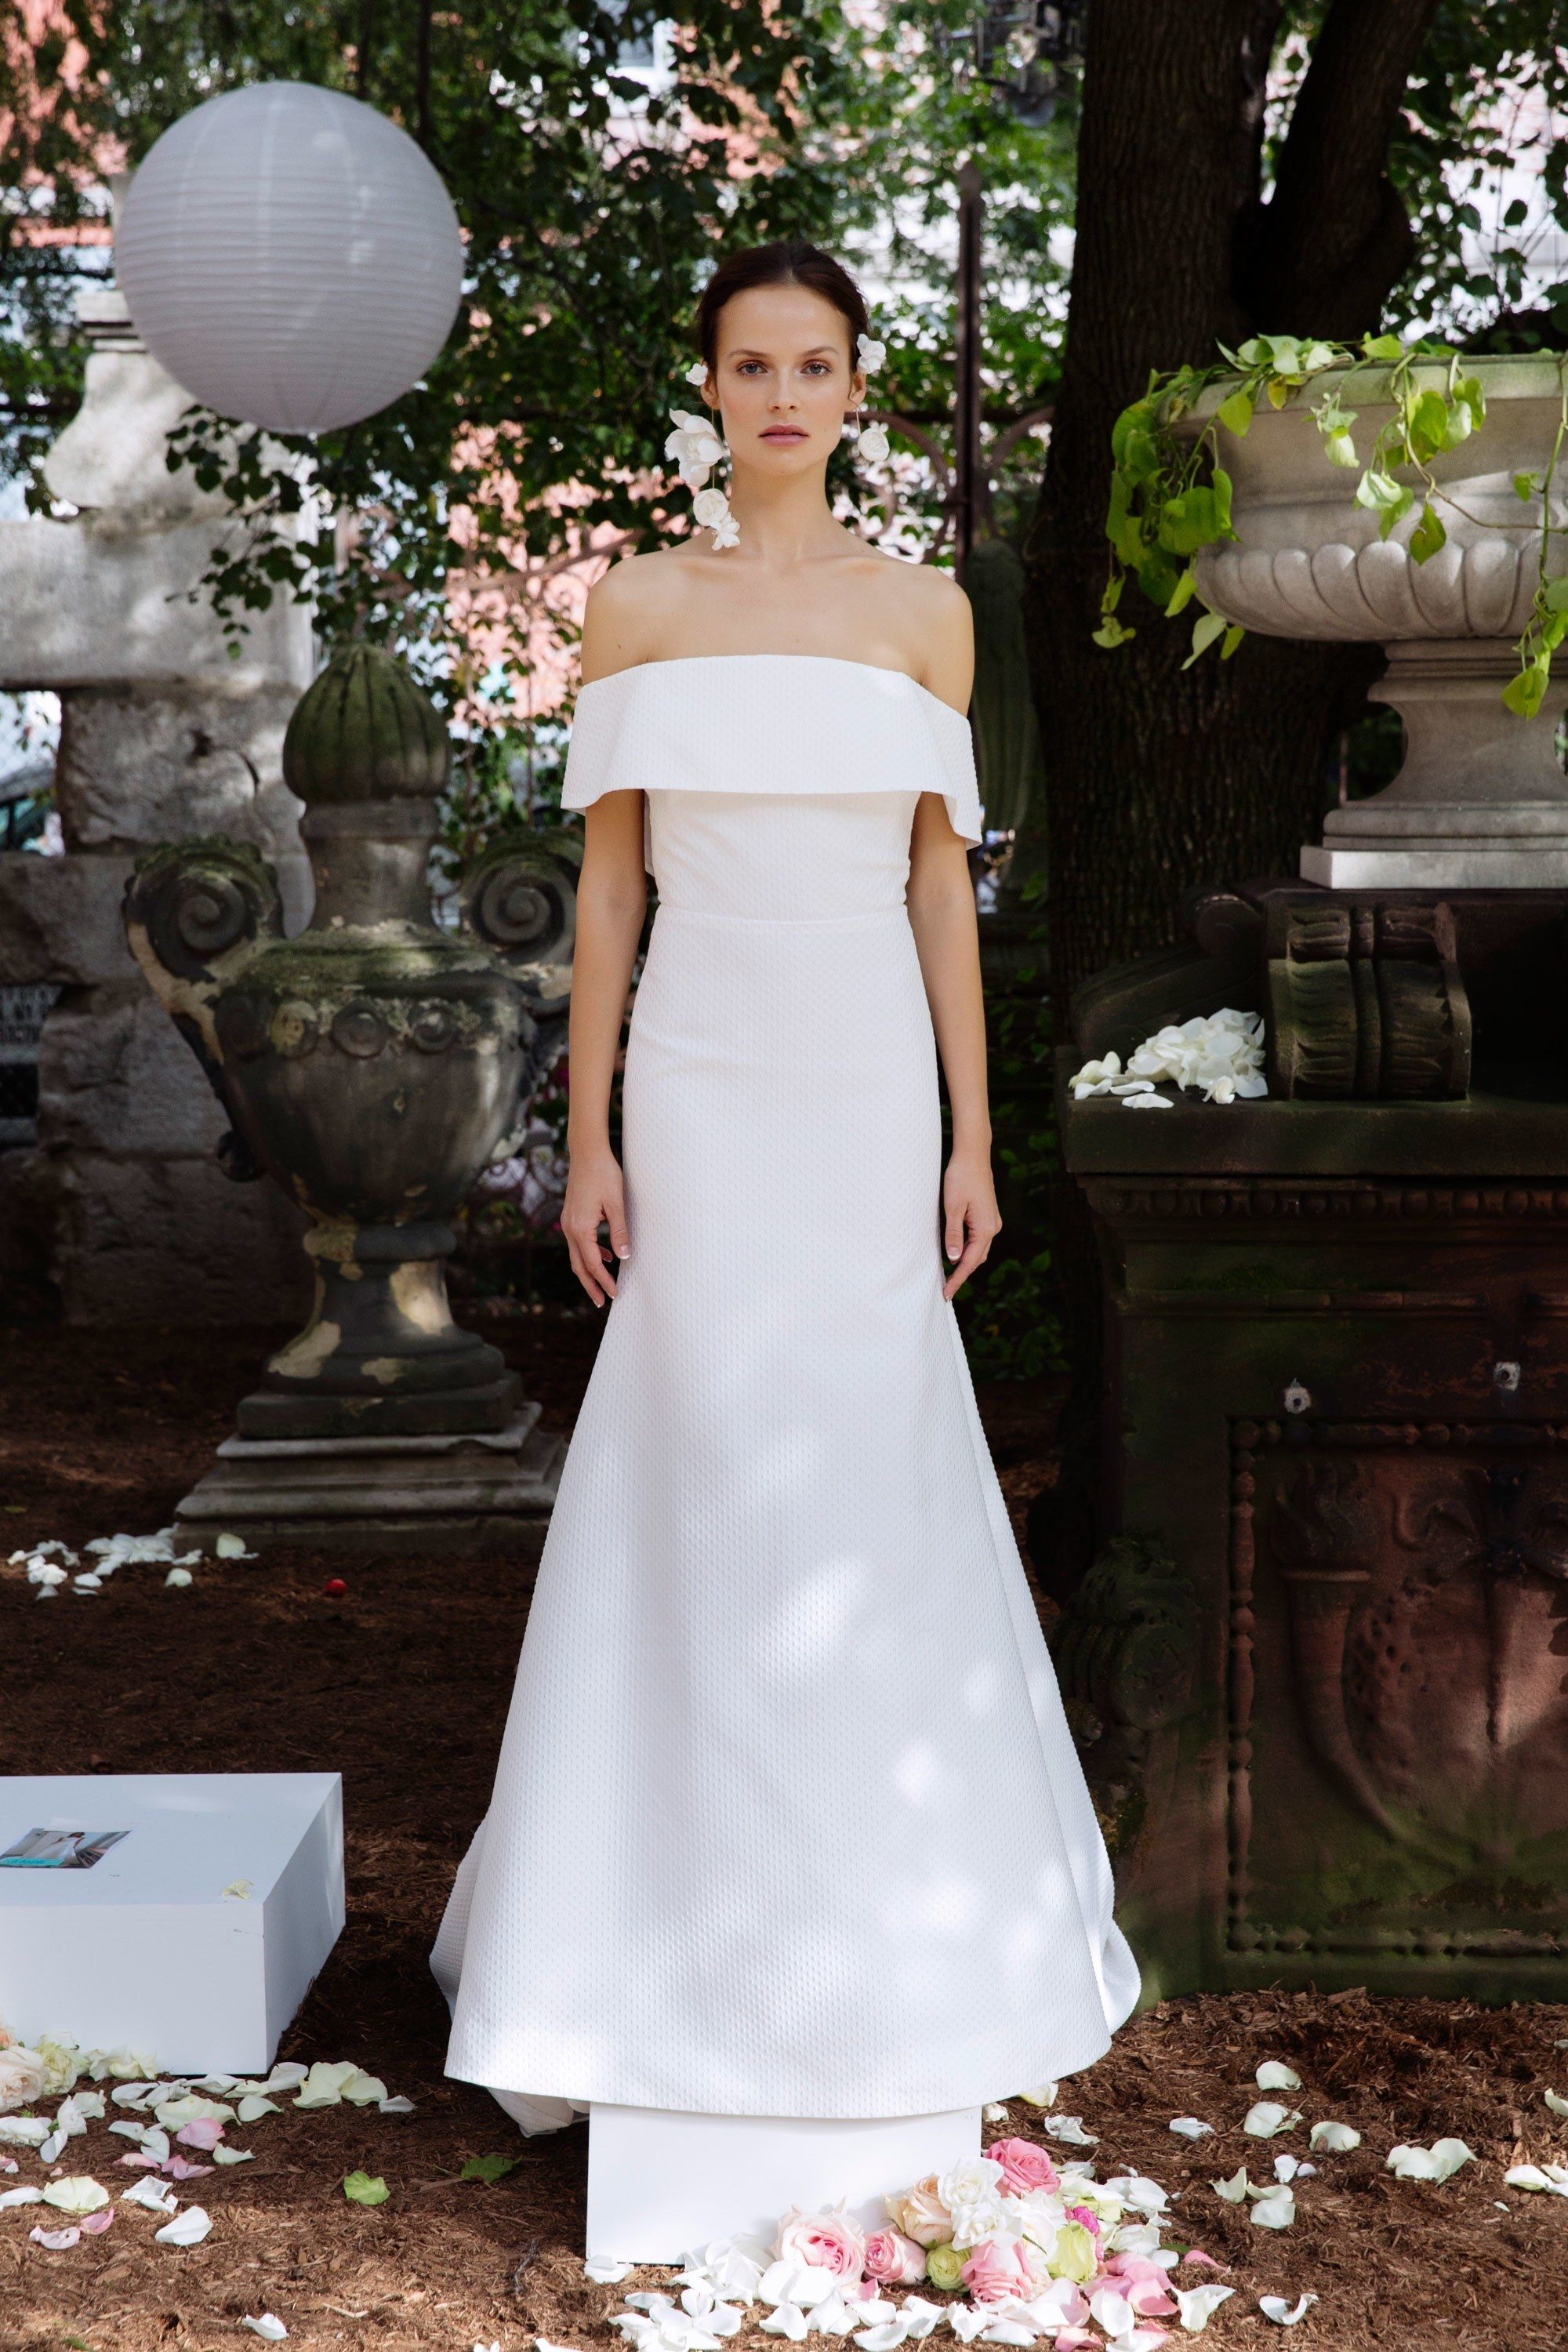 The best new wedding gown styles straight from bridal fashion